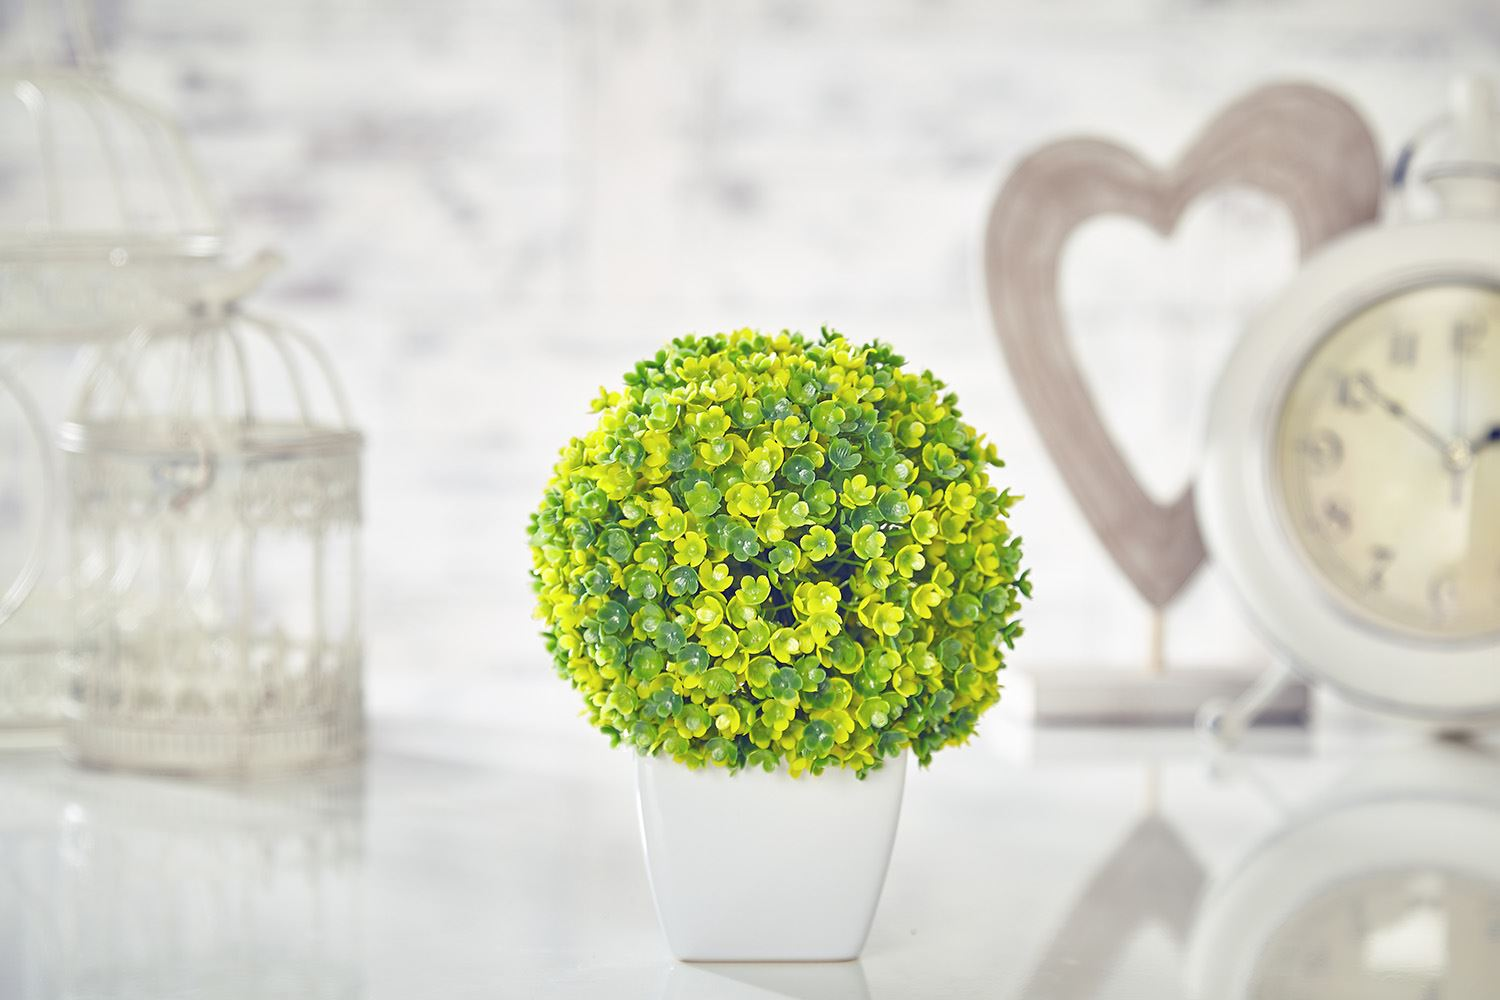 Artificial Topiary Tree Ball Flowers Buxus Boxwood Plants In Pot